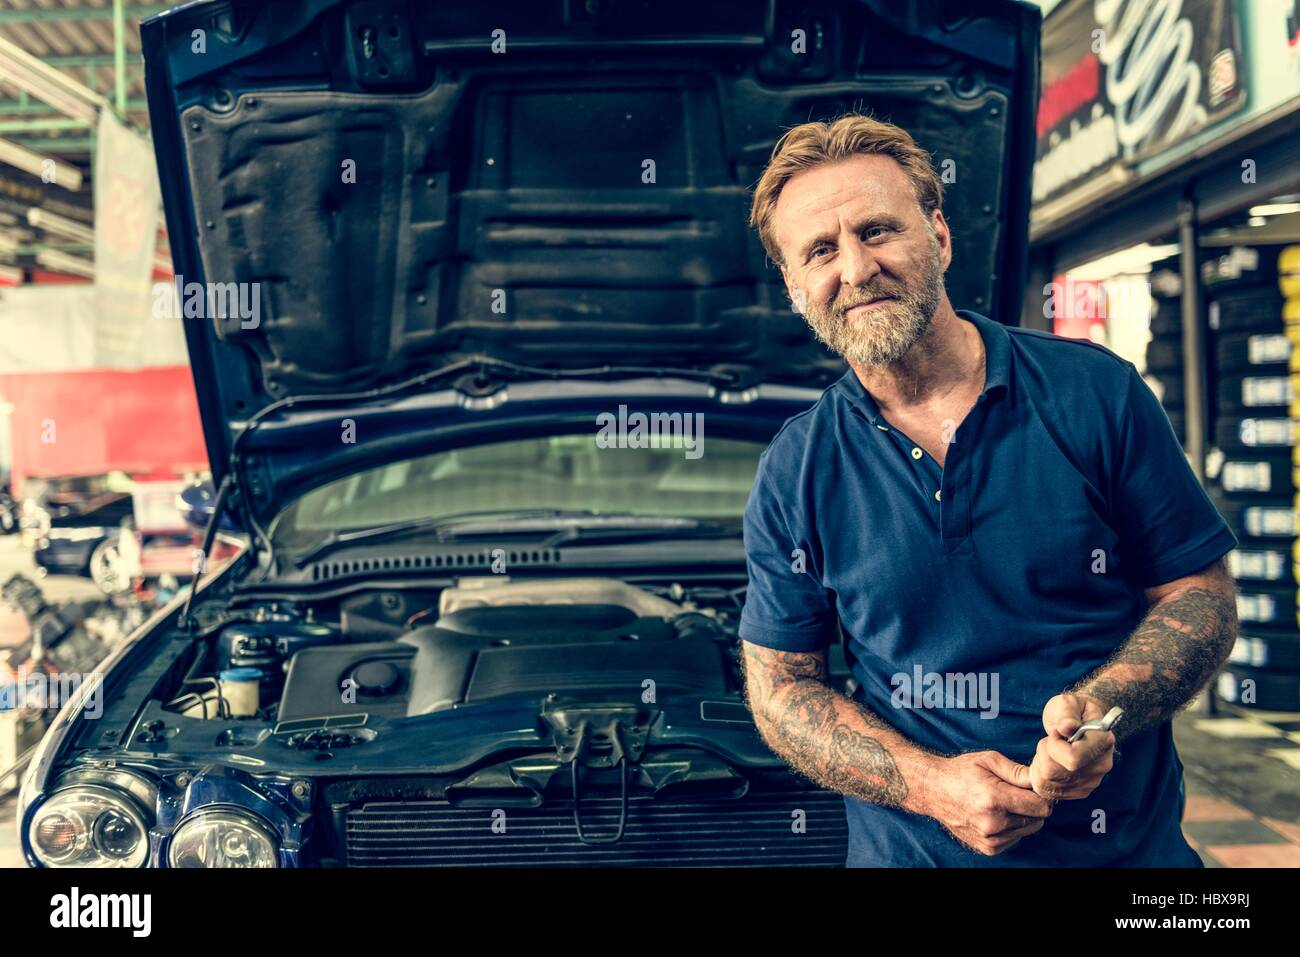 Rj Auto Repair >> Auto Repair Shop Mechanic Technician Concept Stock Photo